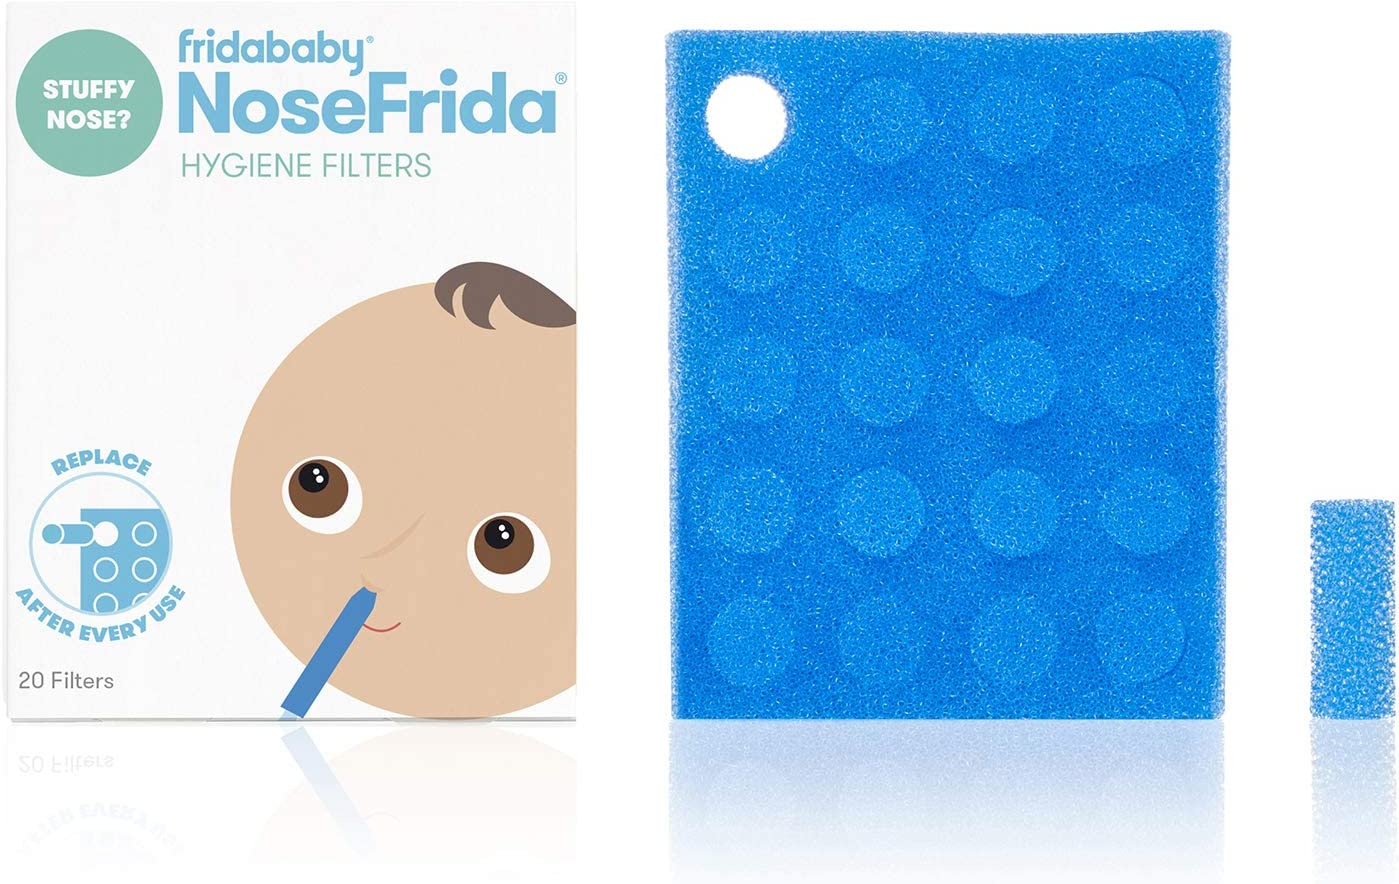 Pack of 20 Baby Nasal Aspirator Hygiene Filters For Nose Frida The Snotsucker